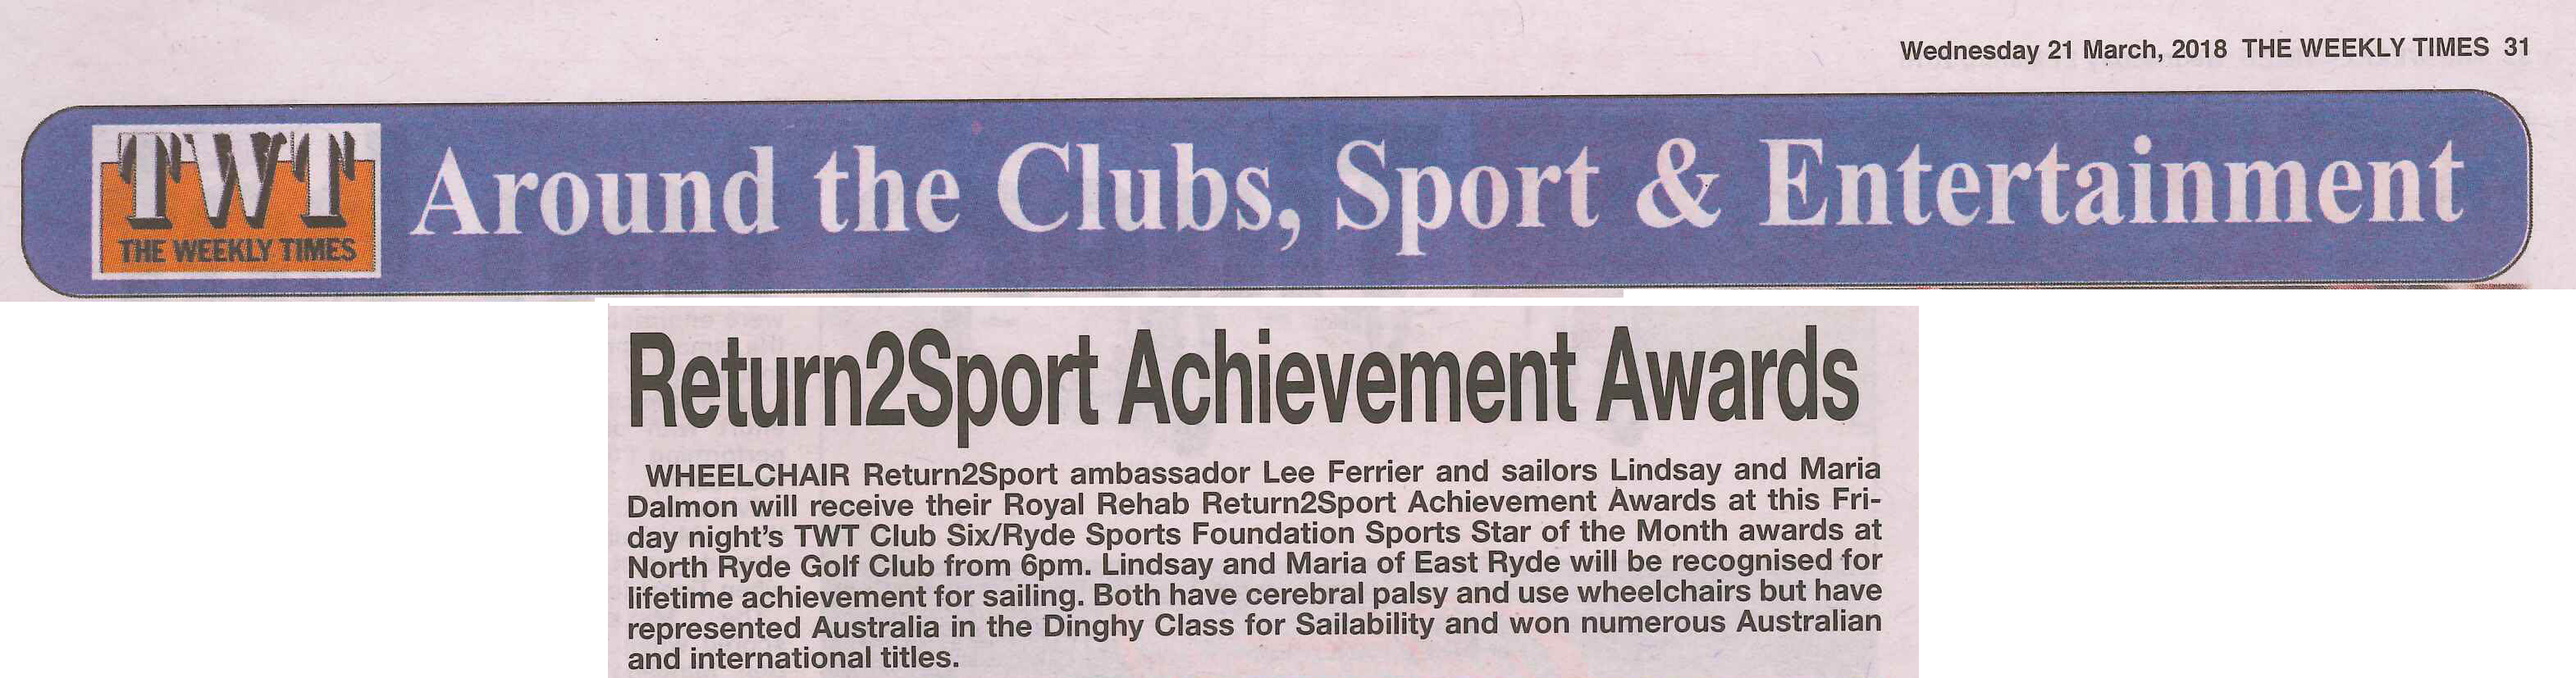 The Weekly Times article 21 Mar 2018 Royal Rehab Achievement Awards